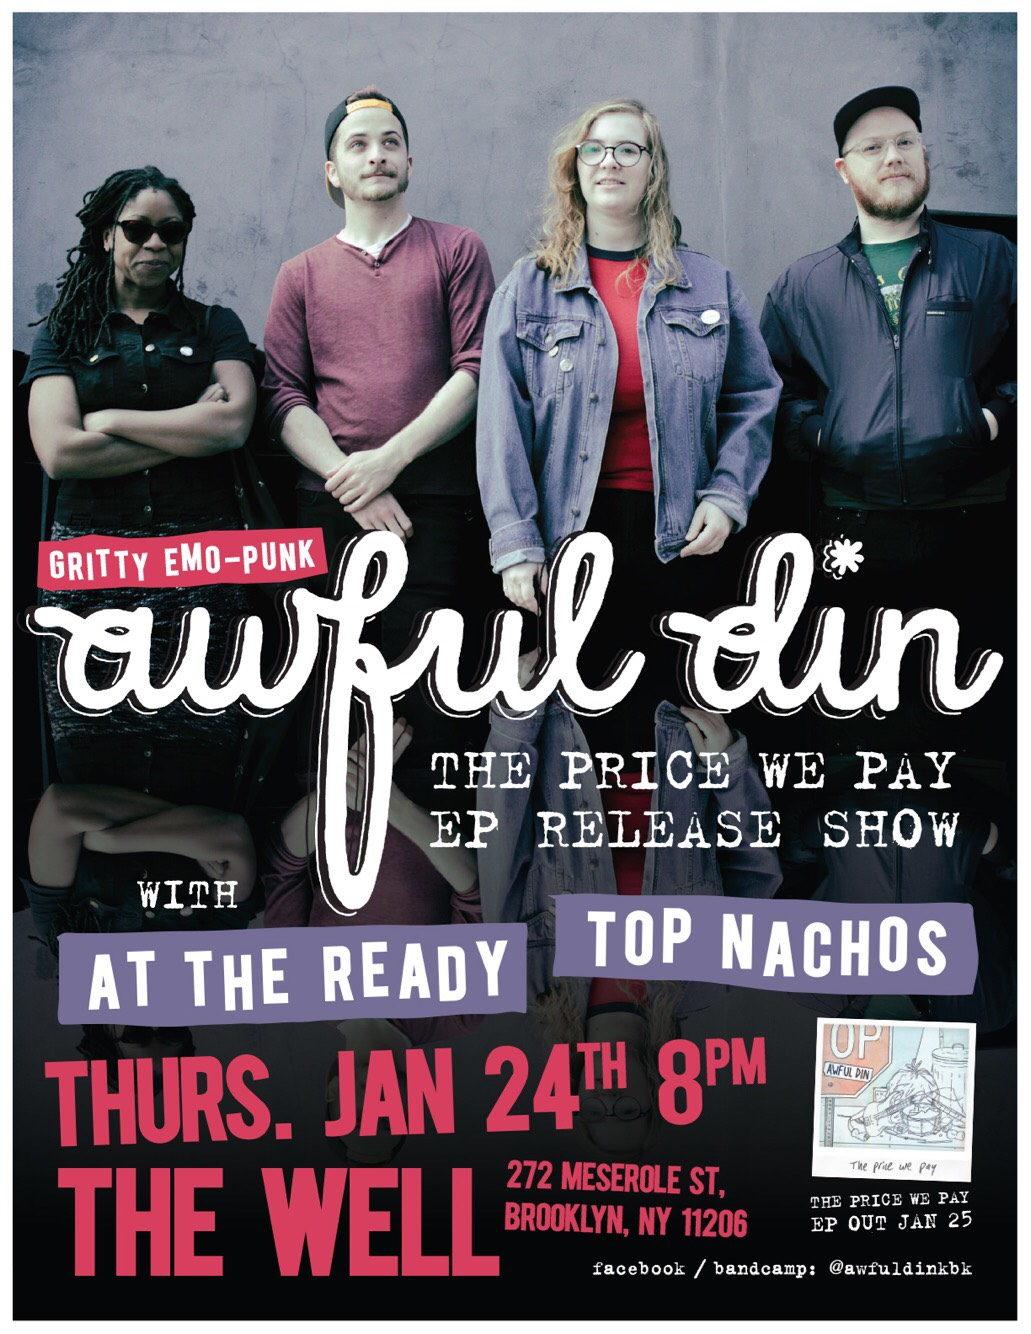 Awful Din 'The Price We Pay' EP Release Show with Top Nachos and At The Ready - January 24, 2019 at The Well in Brooklyn.